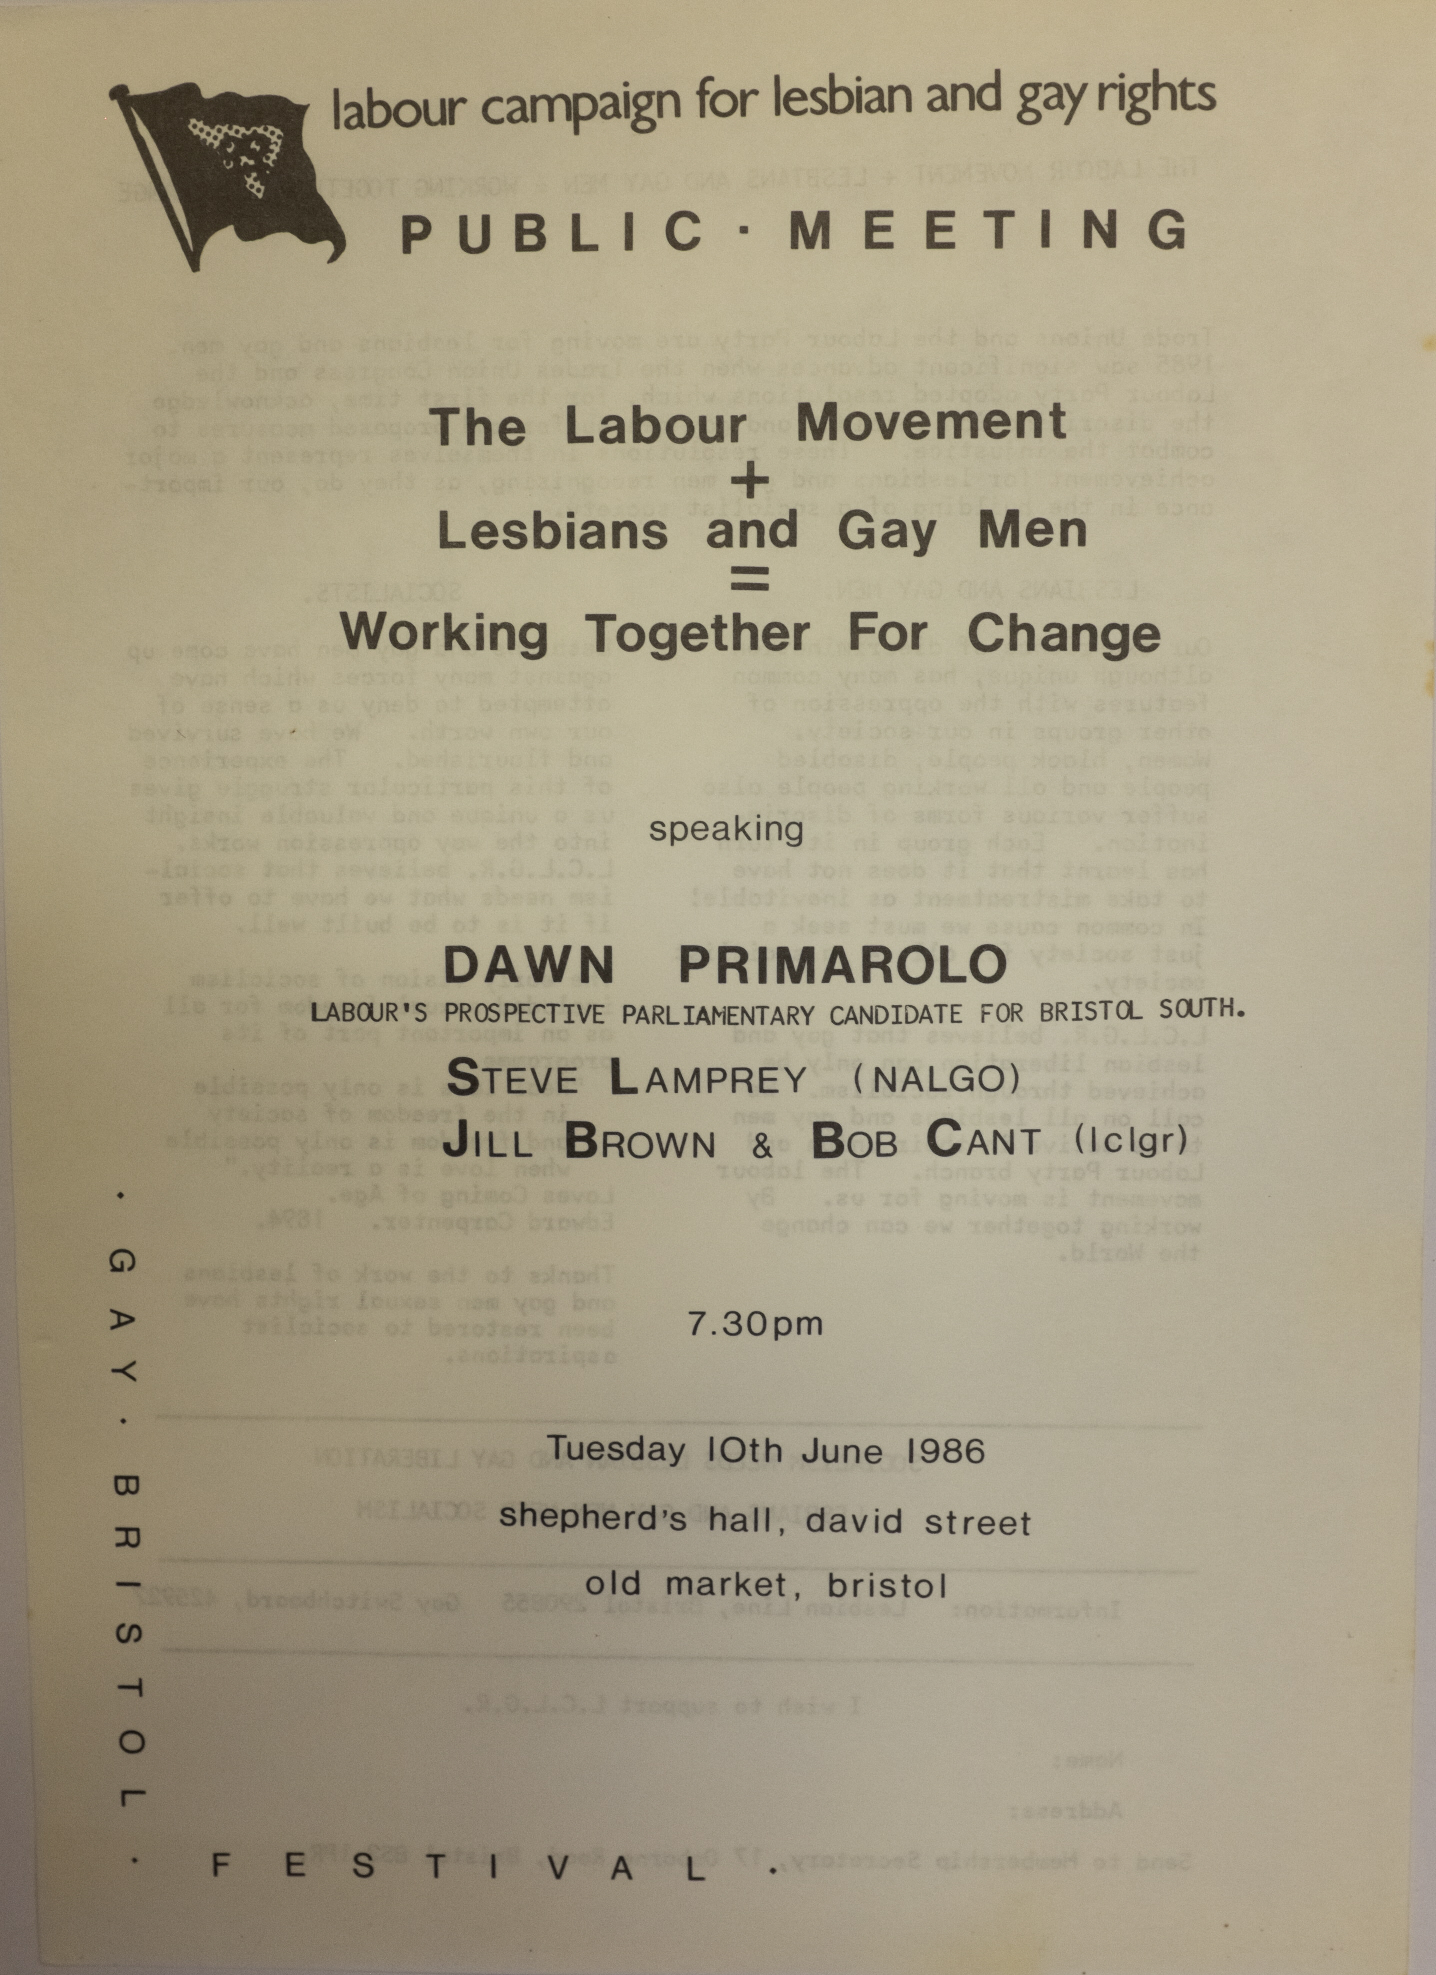 The front of a leaflet advertising a public meeting for the Labour Campaign for Lesbian and Gay Rights